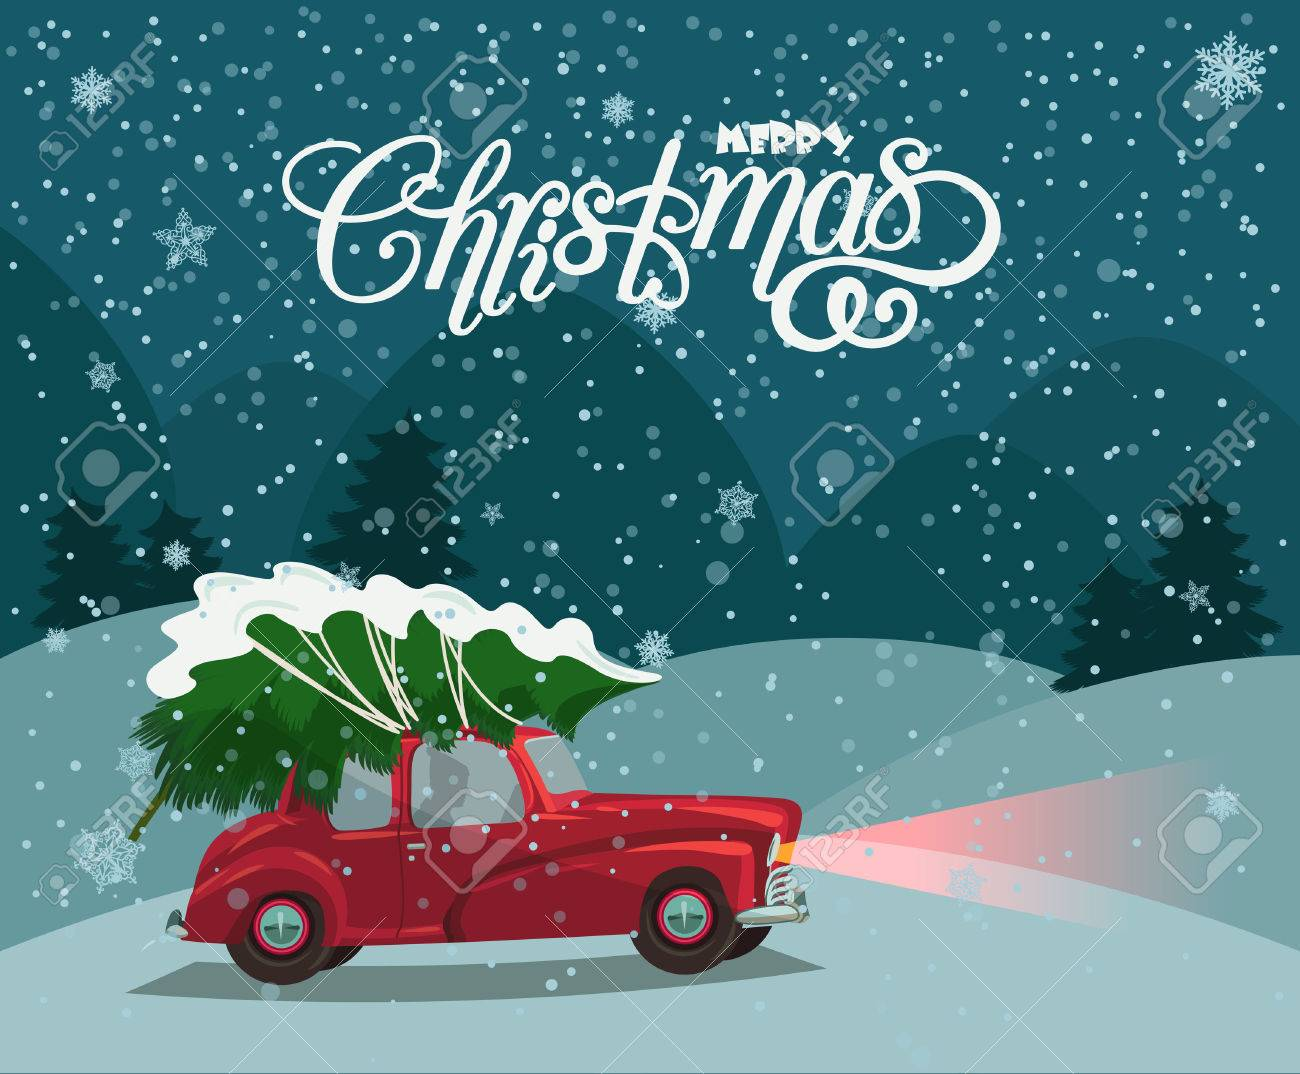 Christmas Landscape Card Design Of Retro Red Car With Tree On The Top Merry